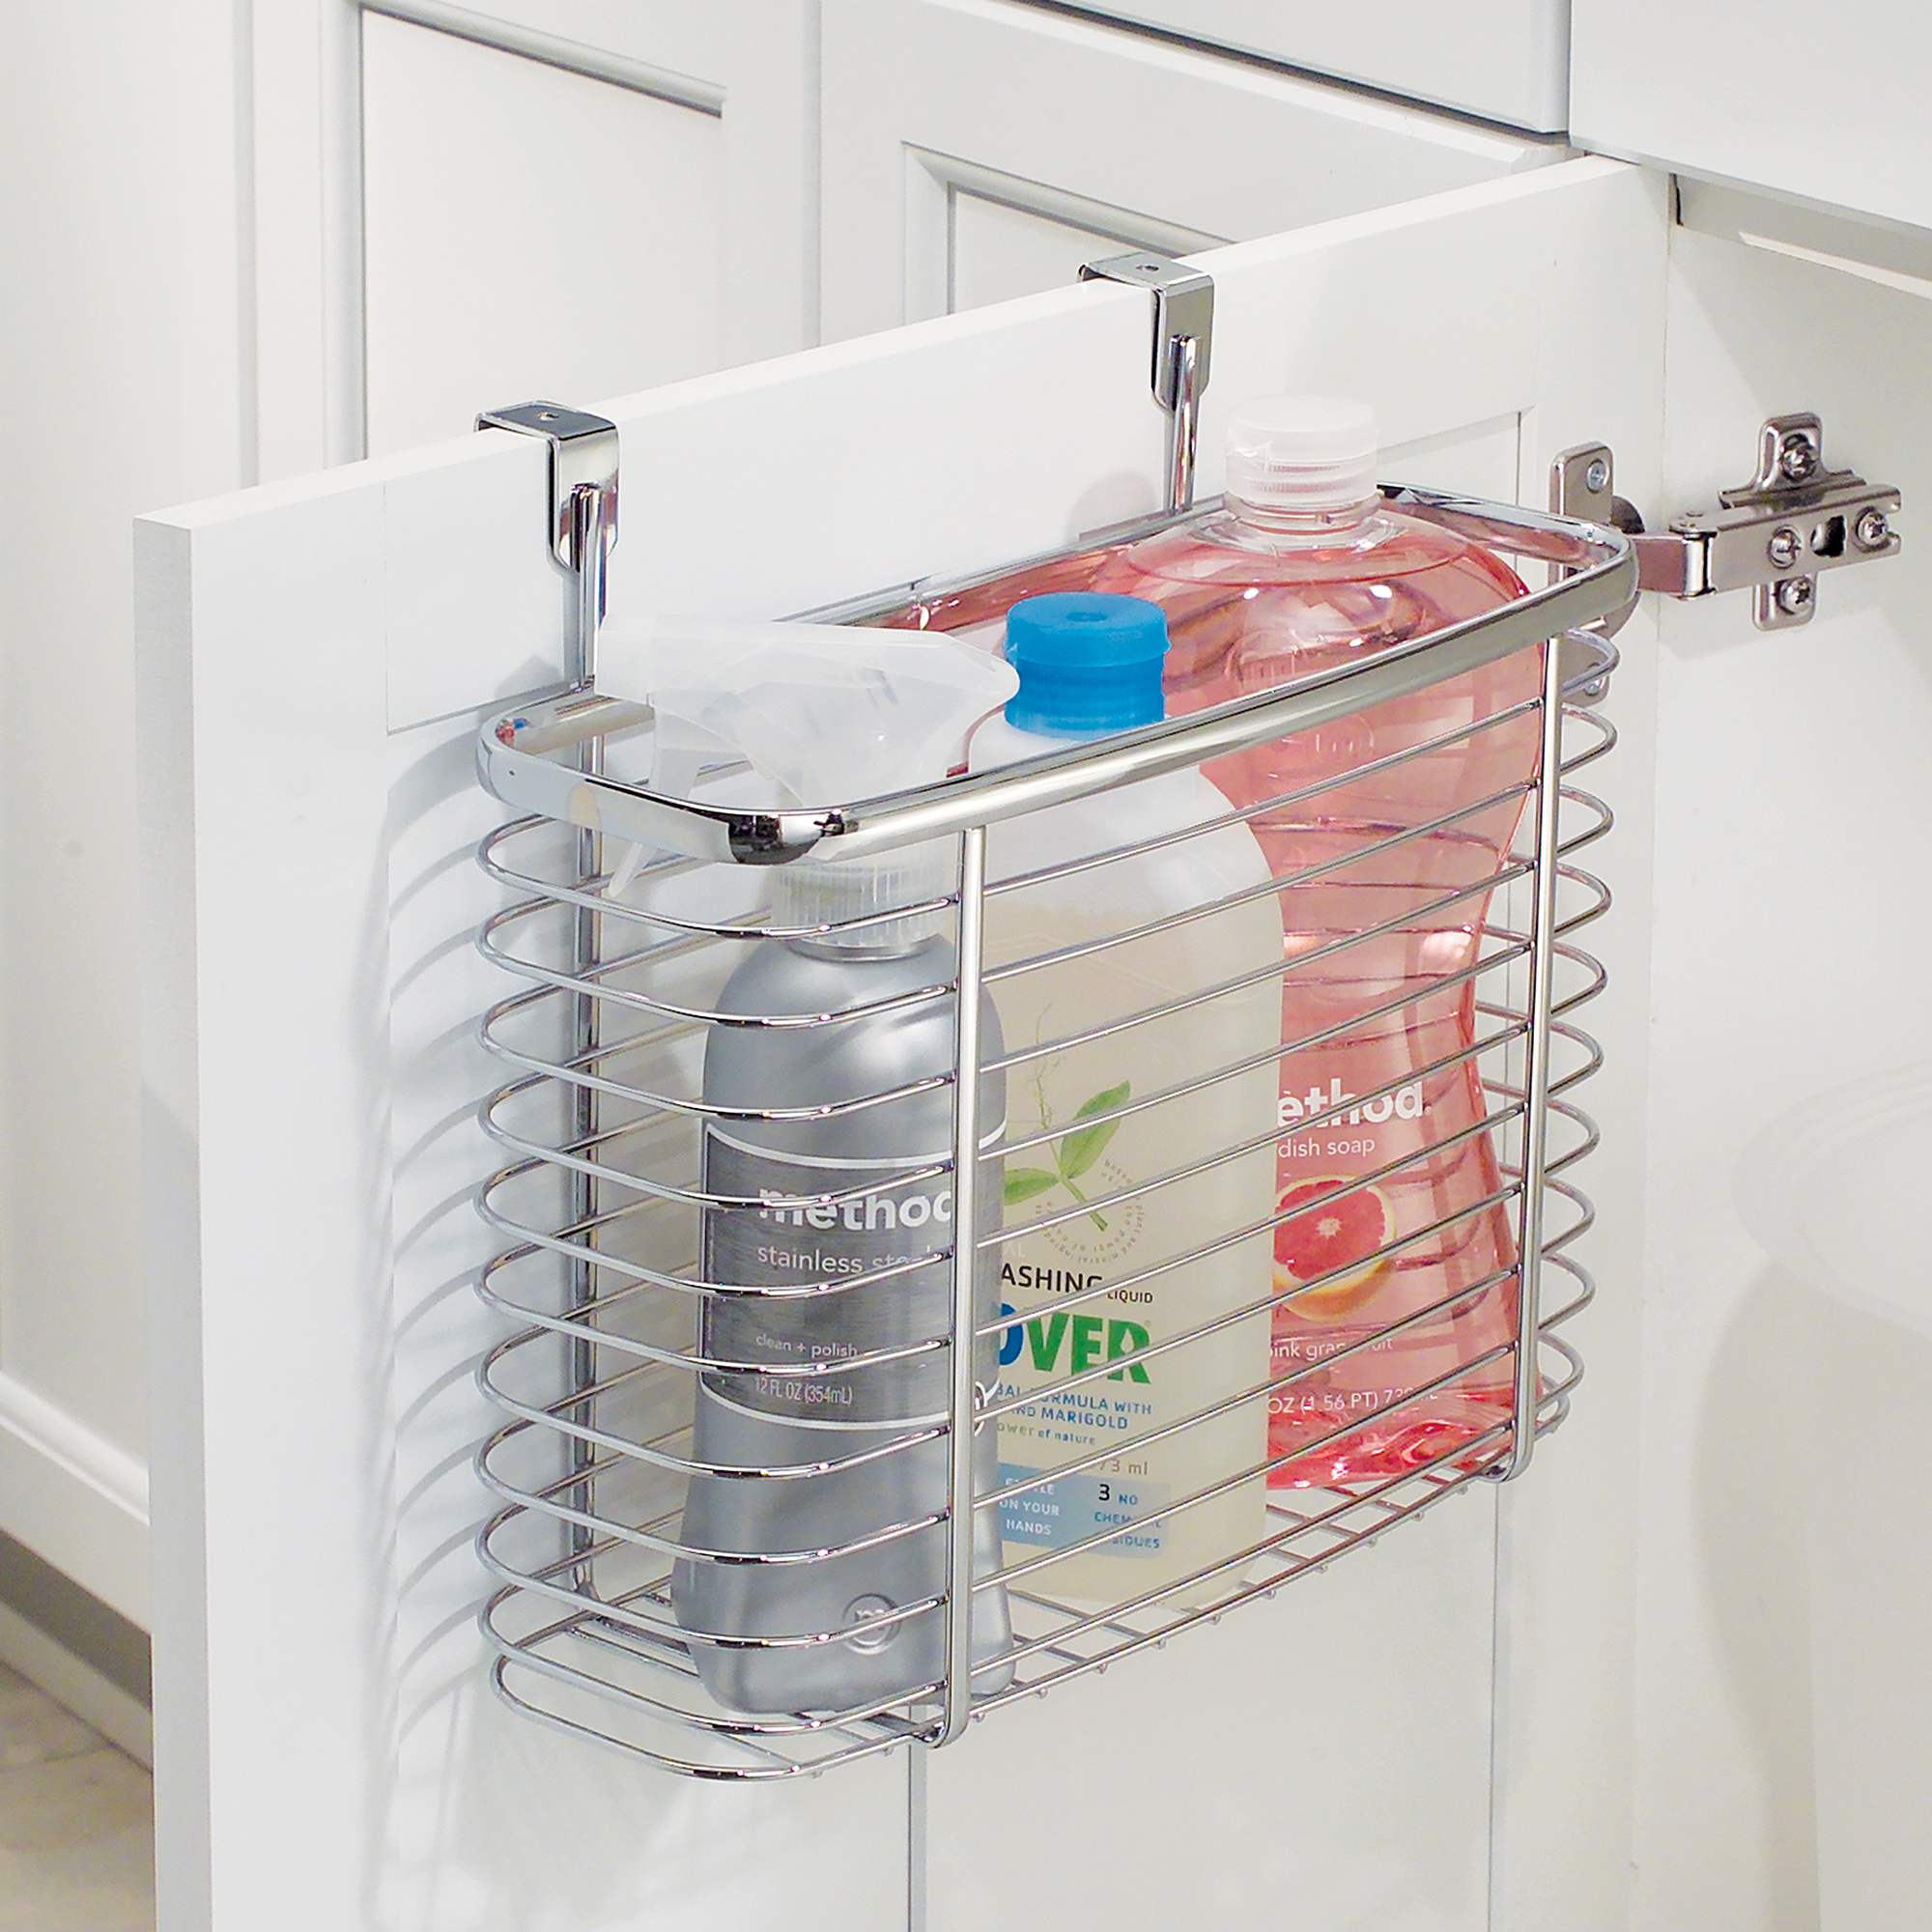 InterDesign Axis Over the Cabinet Kitchen Storage Organizer Basket for Aluminum Foil, Sandwich Bags, Cleaning Supplies, Medium, Chrome